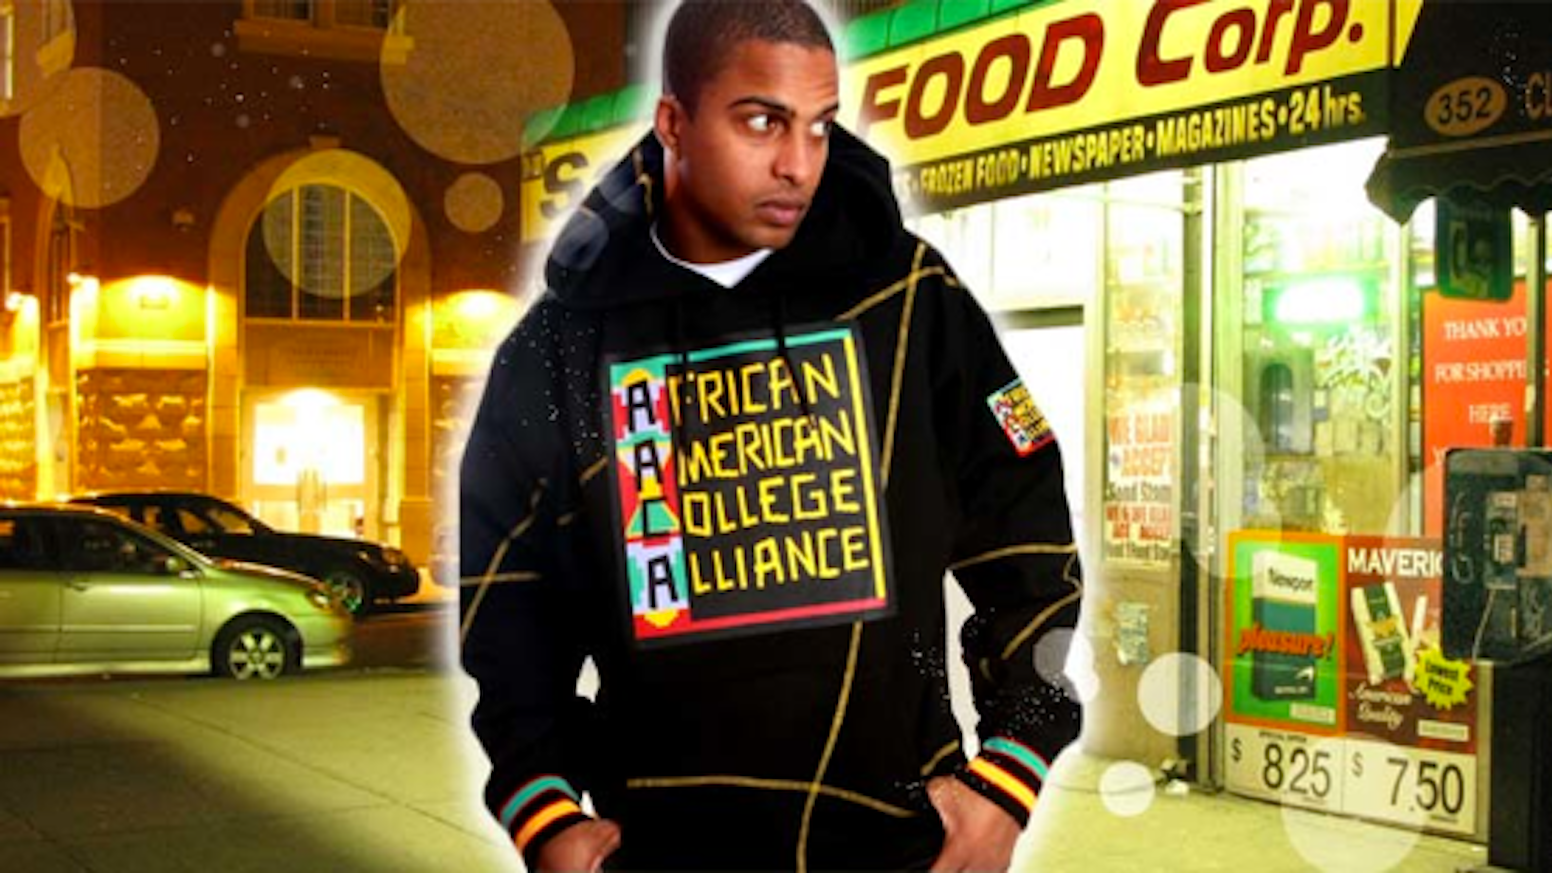 African American College Alliance Clothing By Chris Latimer Kickstarter